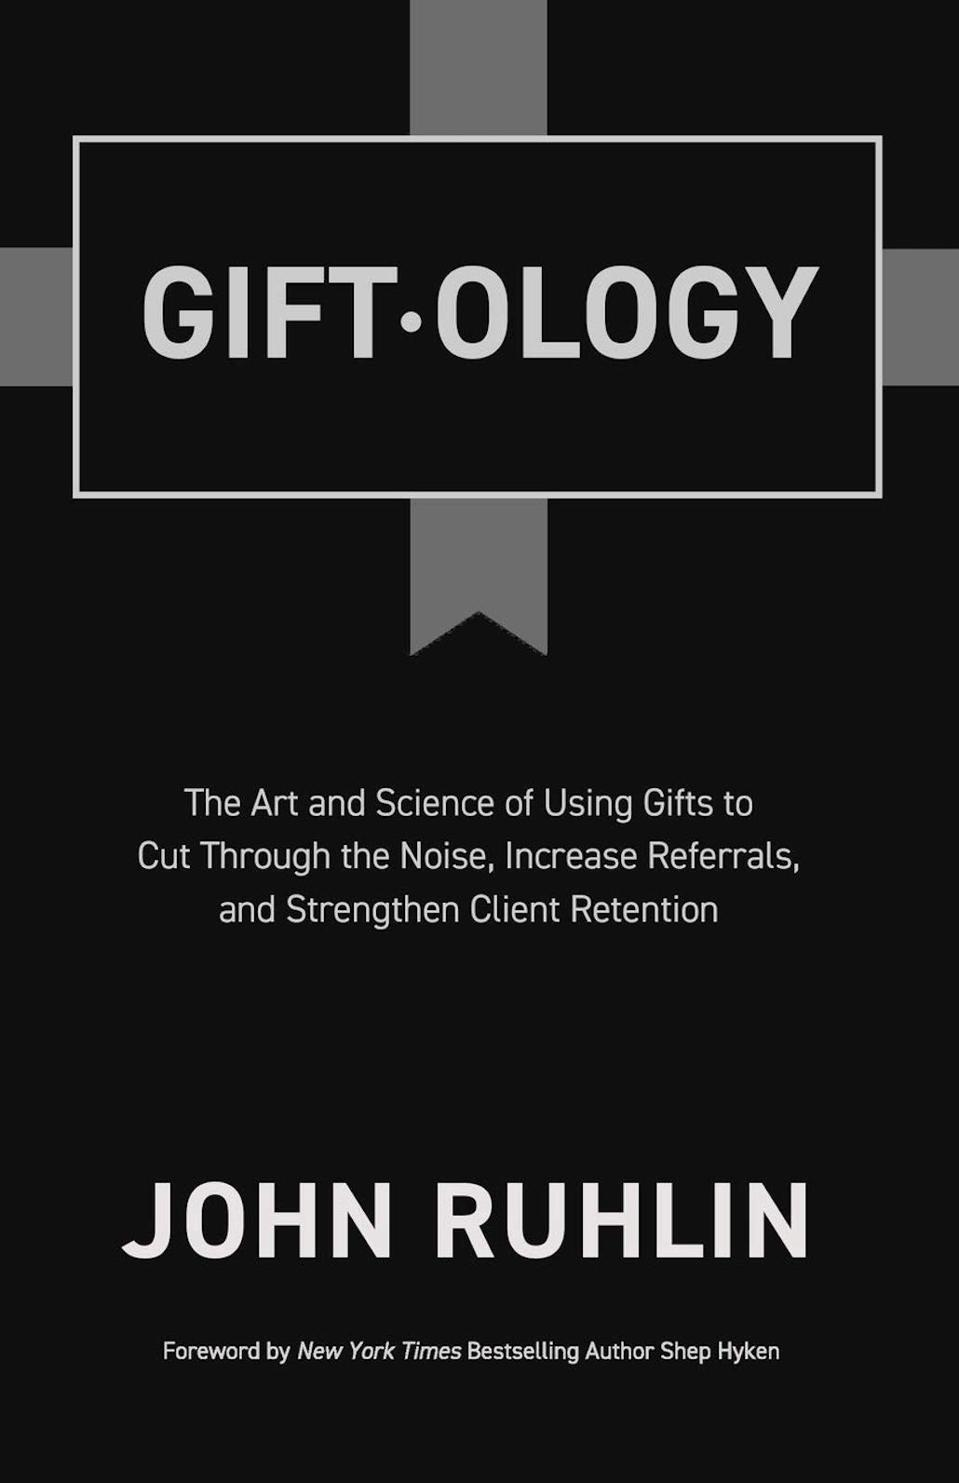 Giftology: The Art and Science of Using Gifts to Cut Through the Noise, Increase Referrals, and Strengthen Client Retention by John Ruhlin